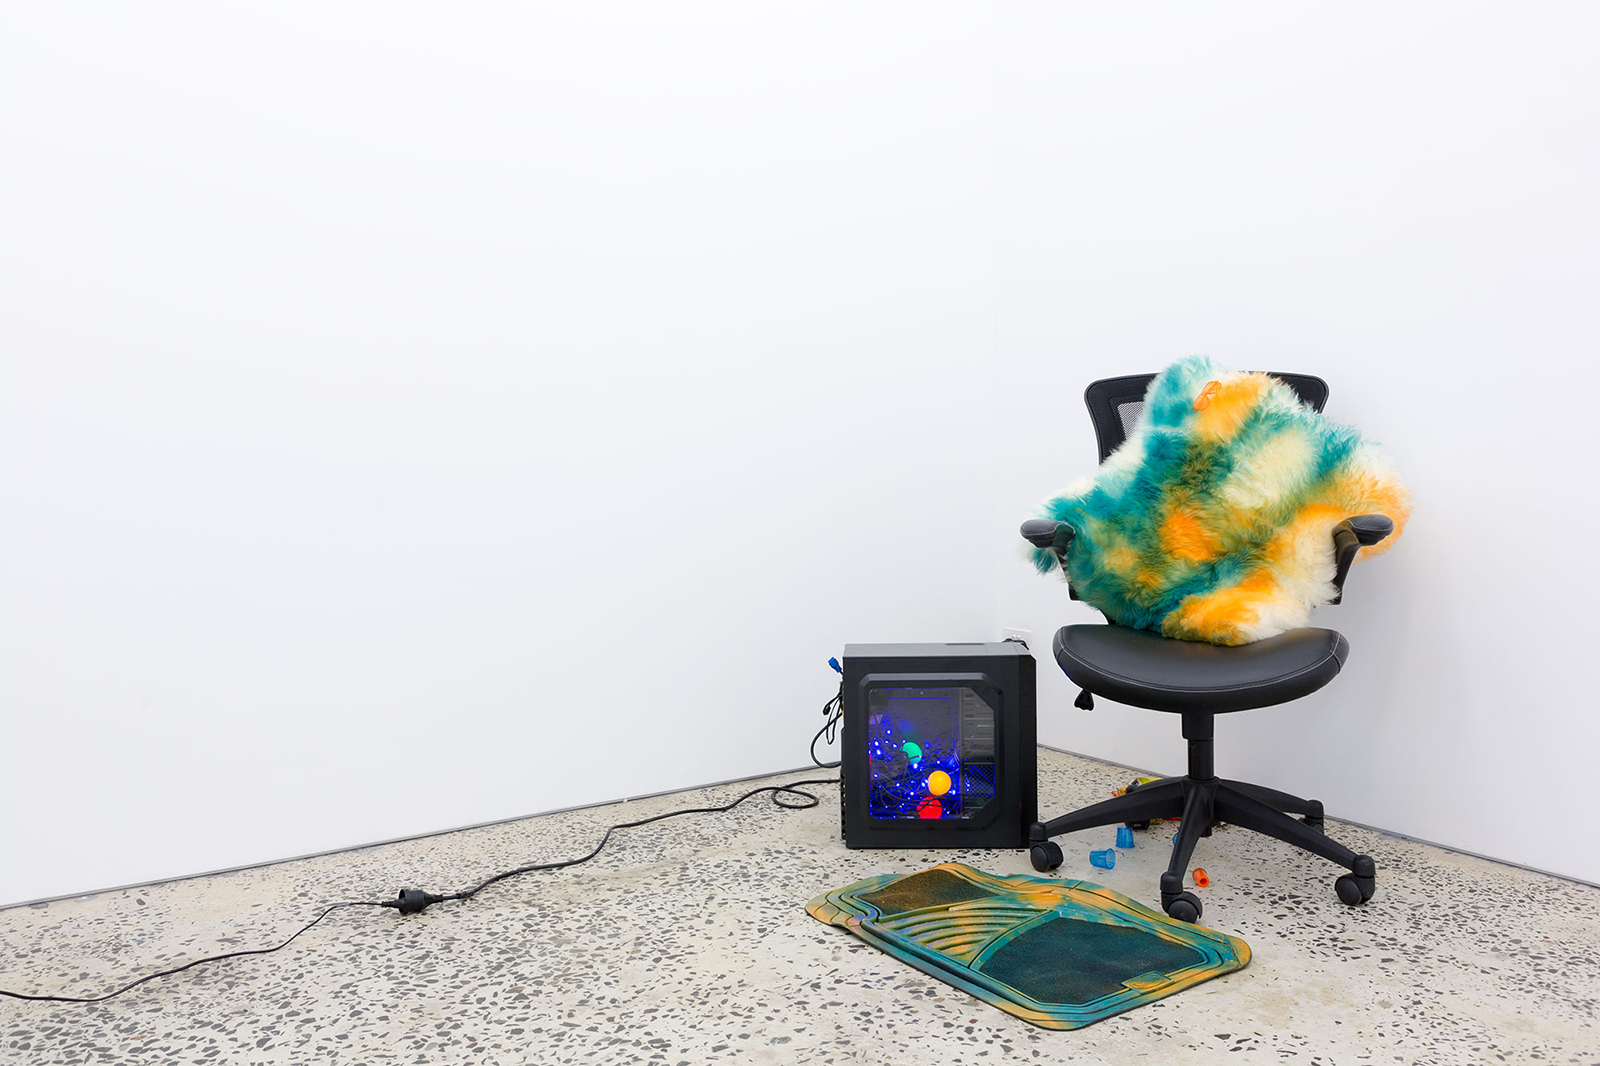 Contemporary Monsters, 2016, two-channel digital video, jelly shot glasses, gel wax, car air freshener, sheepskin, enamel paint, cereal, rubber mat, LED lights, computer tower, 11 minutes, 19 seconds